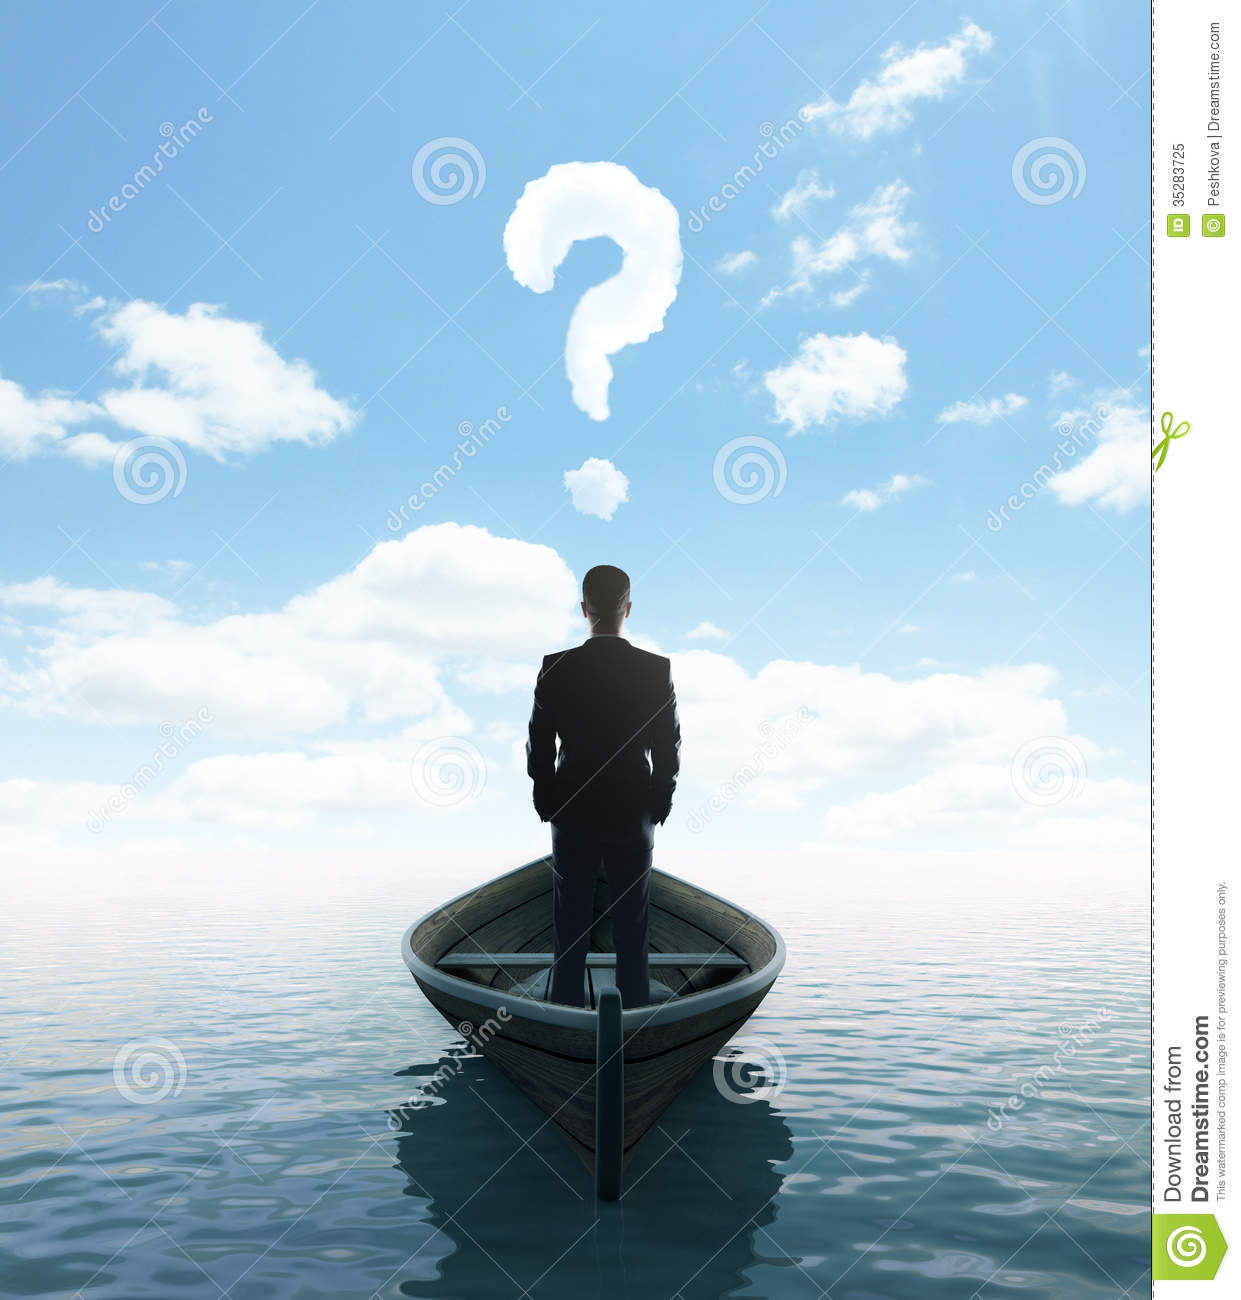 ... Standing On A Boat Royalty Free Stock Photo - Image: 35283725